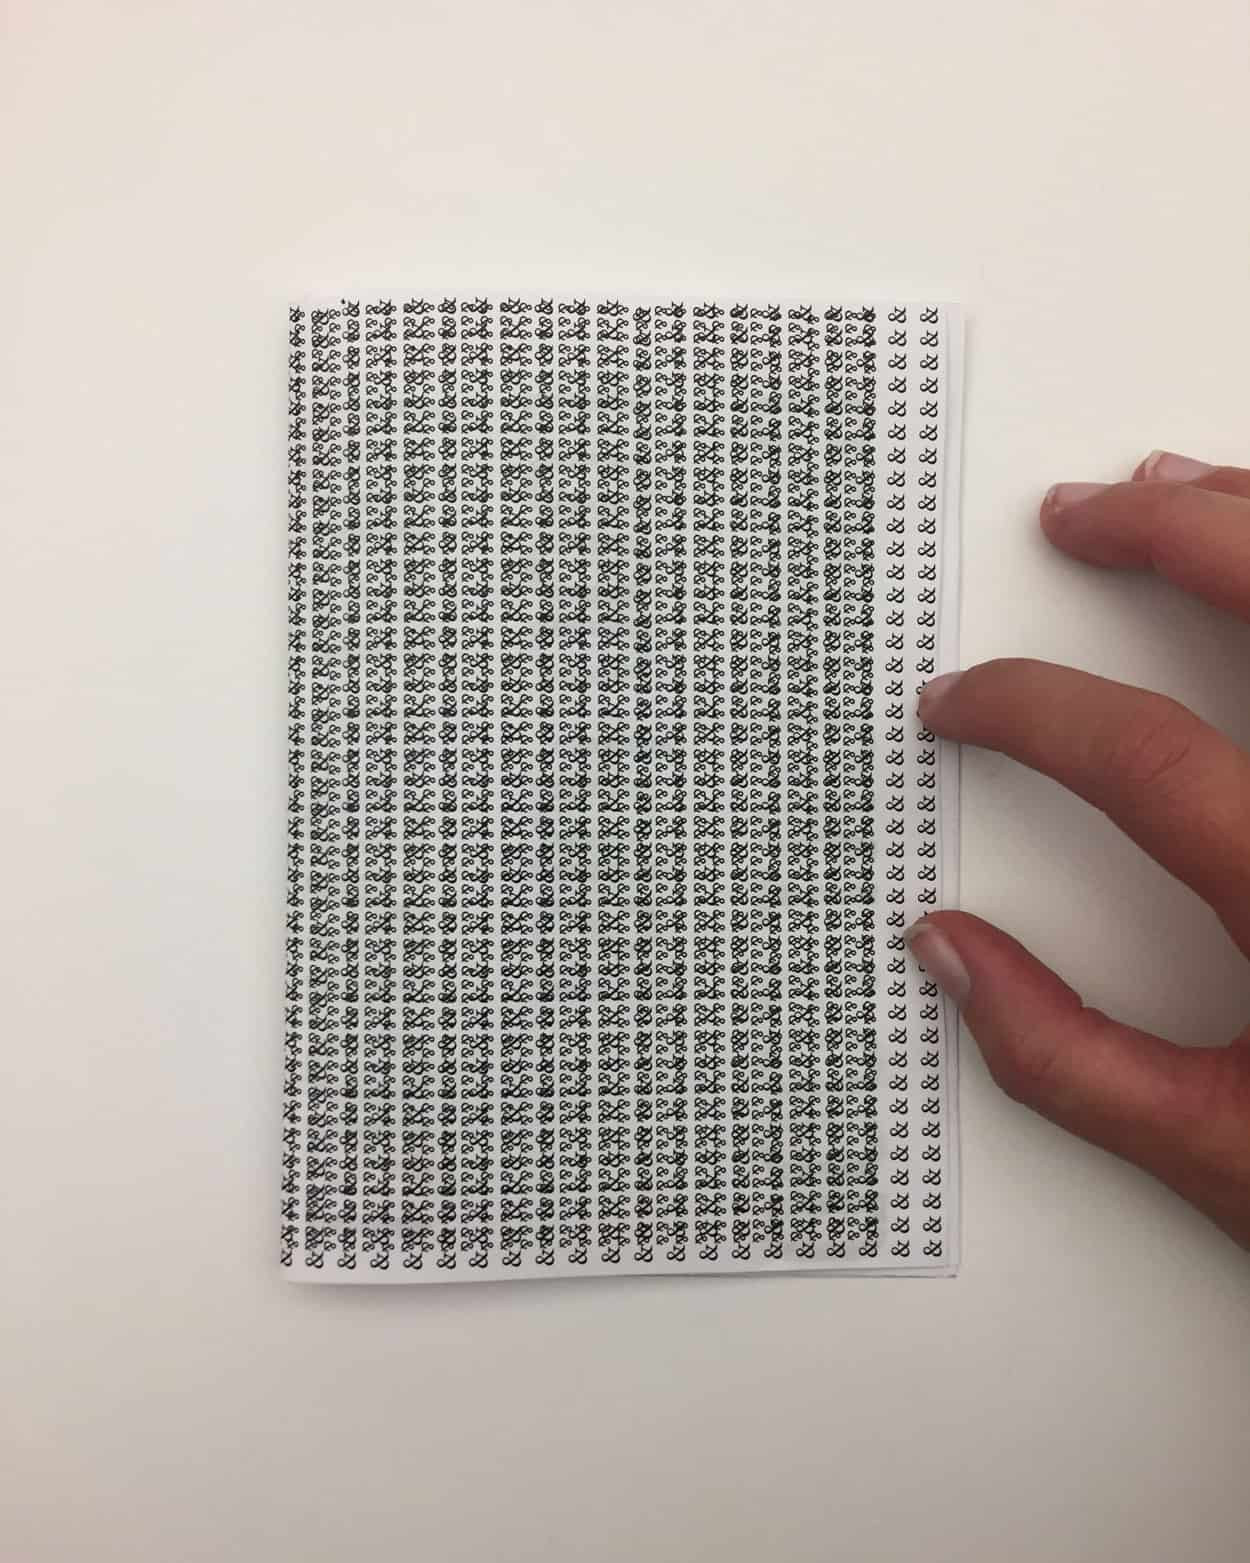 One side of a folded Piece pf paper. A repeating pattern covers the entire page.